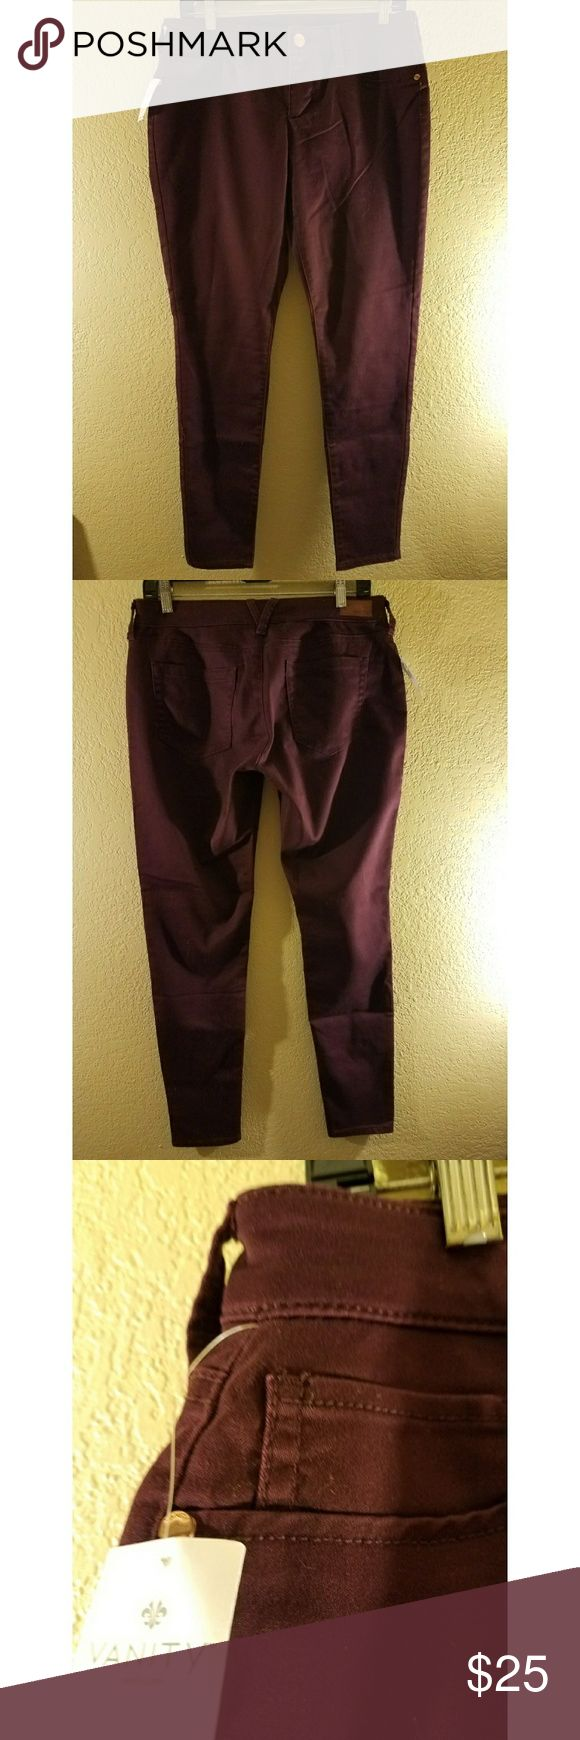 Purple Vanity skinnies Vanity brand purple skinny pants New with tags Womens size 30 No trades  Most offers will be considered  Bundle and save Vanity Pants Skinny